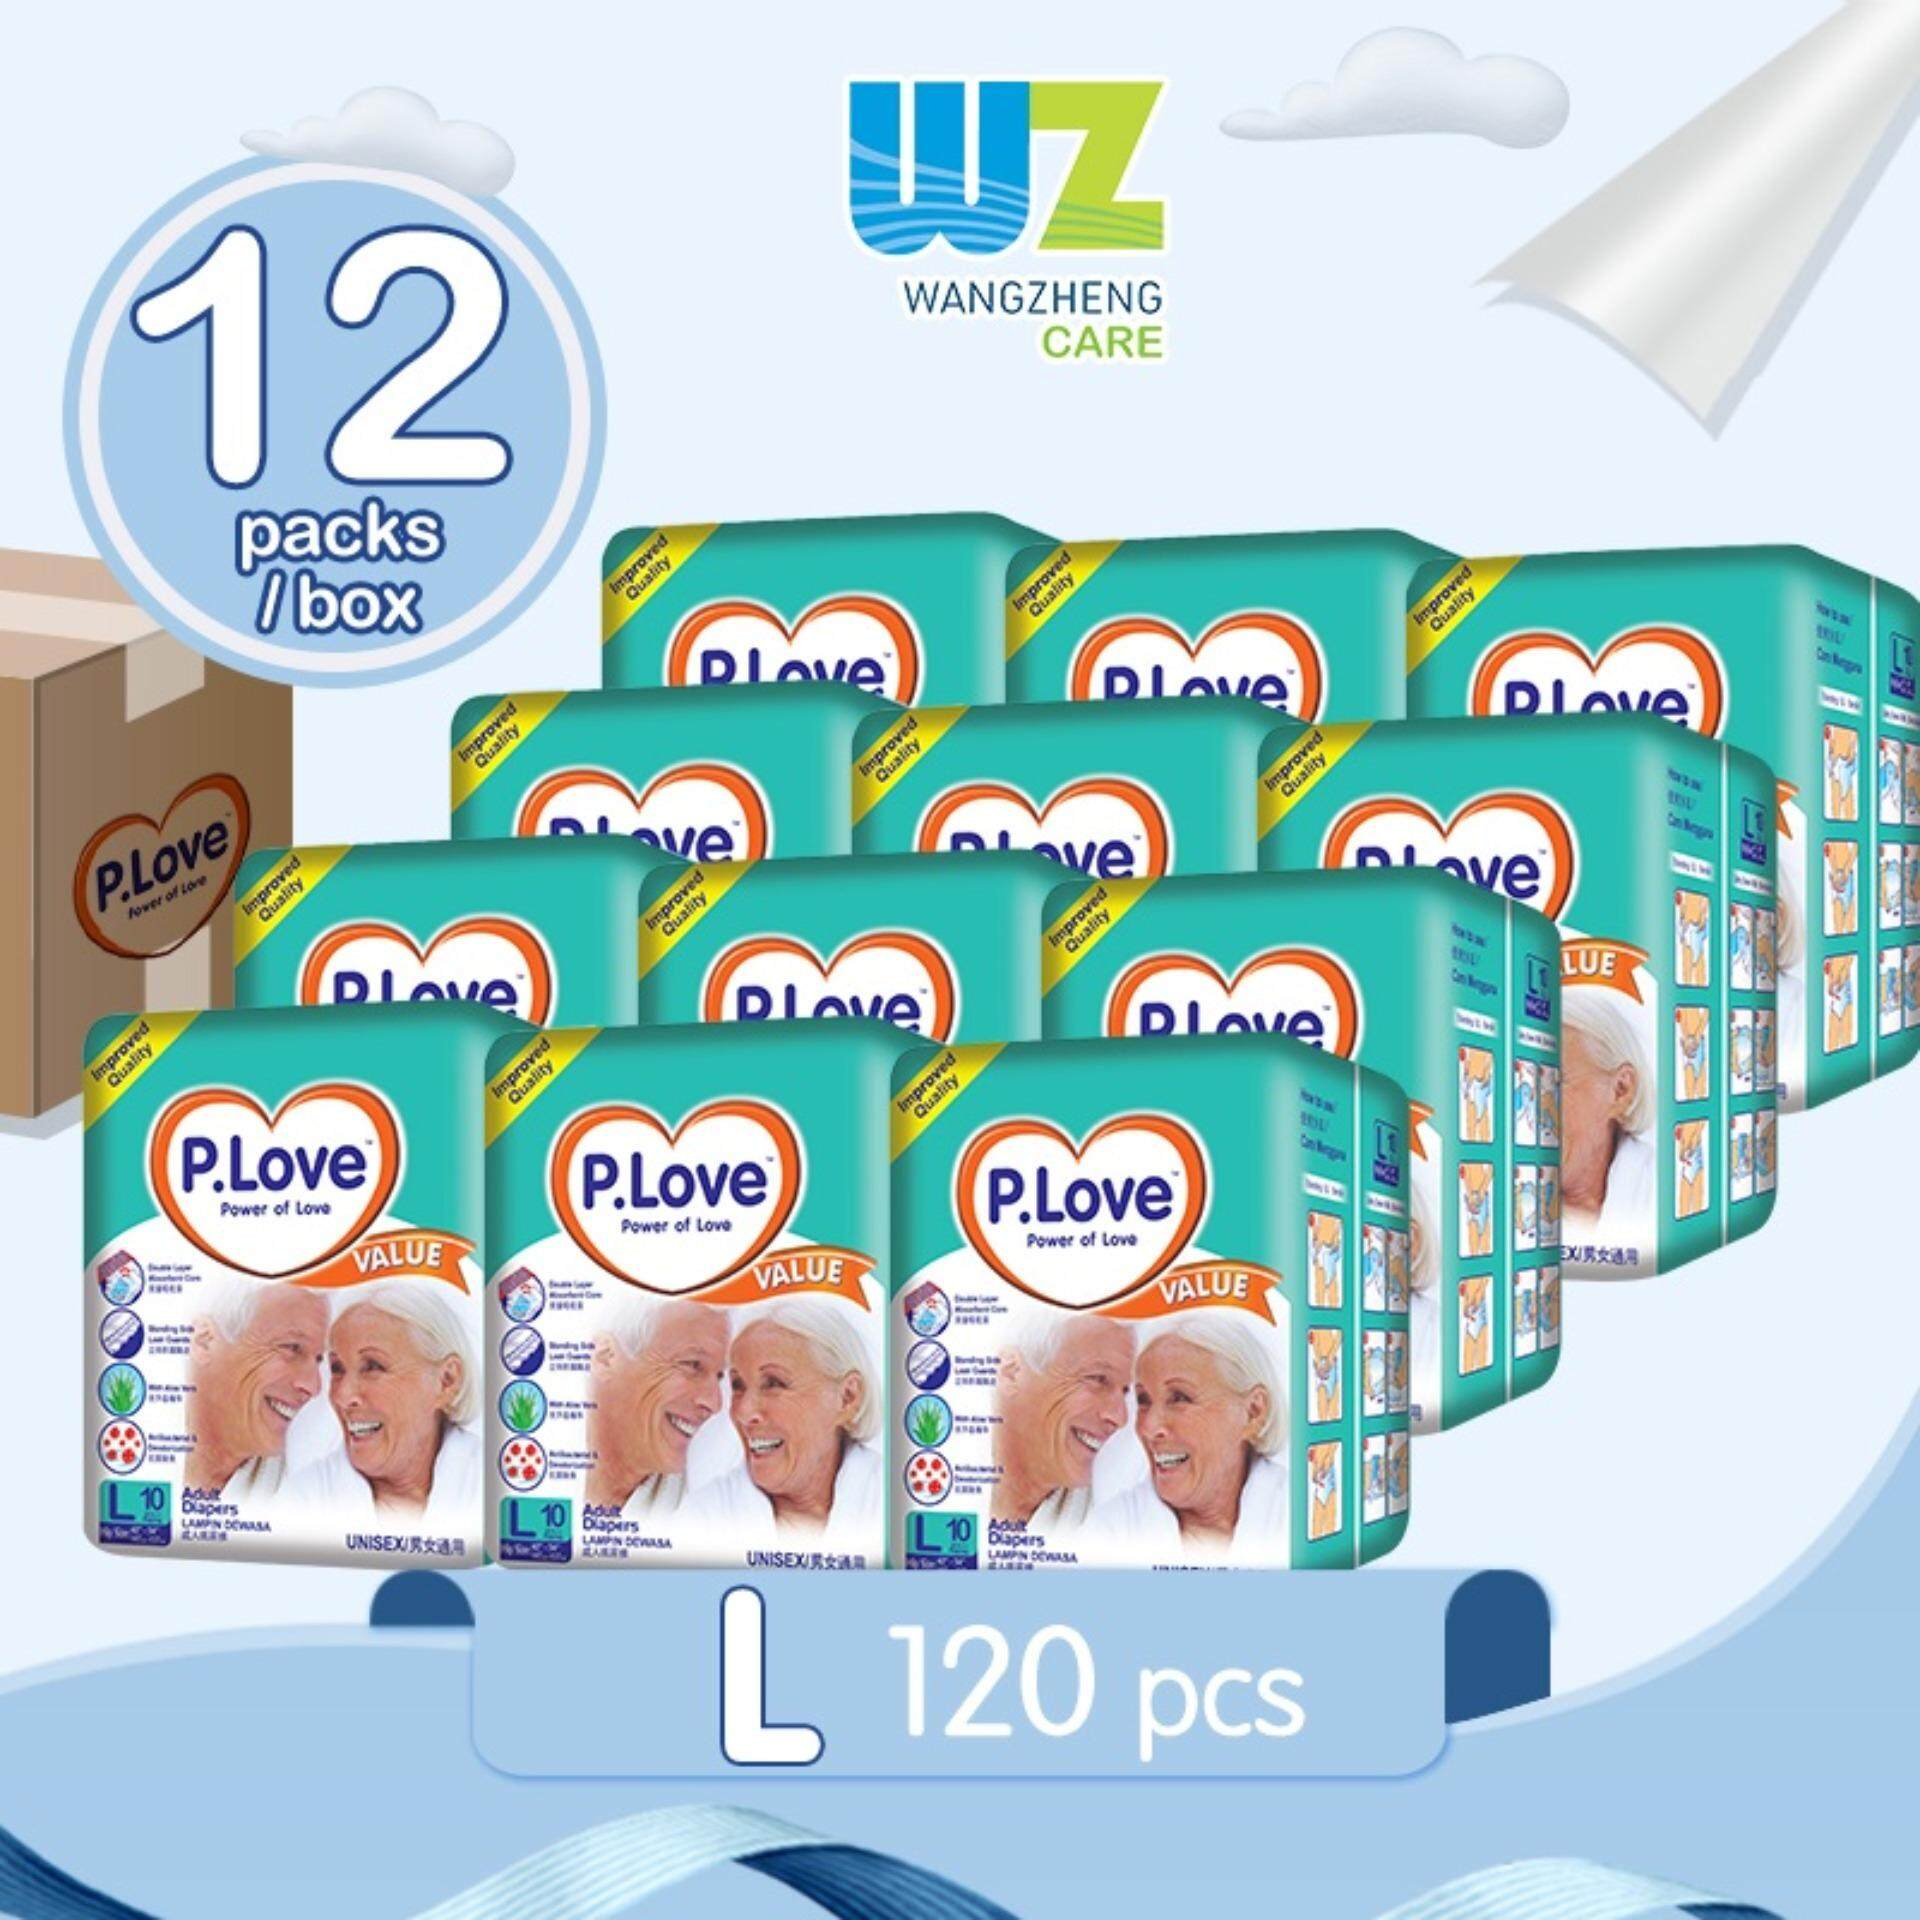 PLove Value Adult Tape Diapers L10 x 12 Packs [WangZheng CARE]